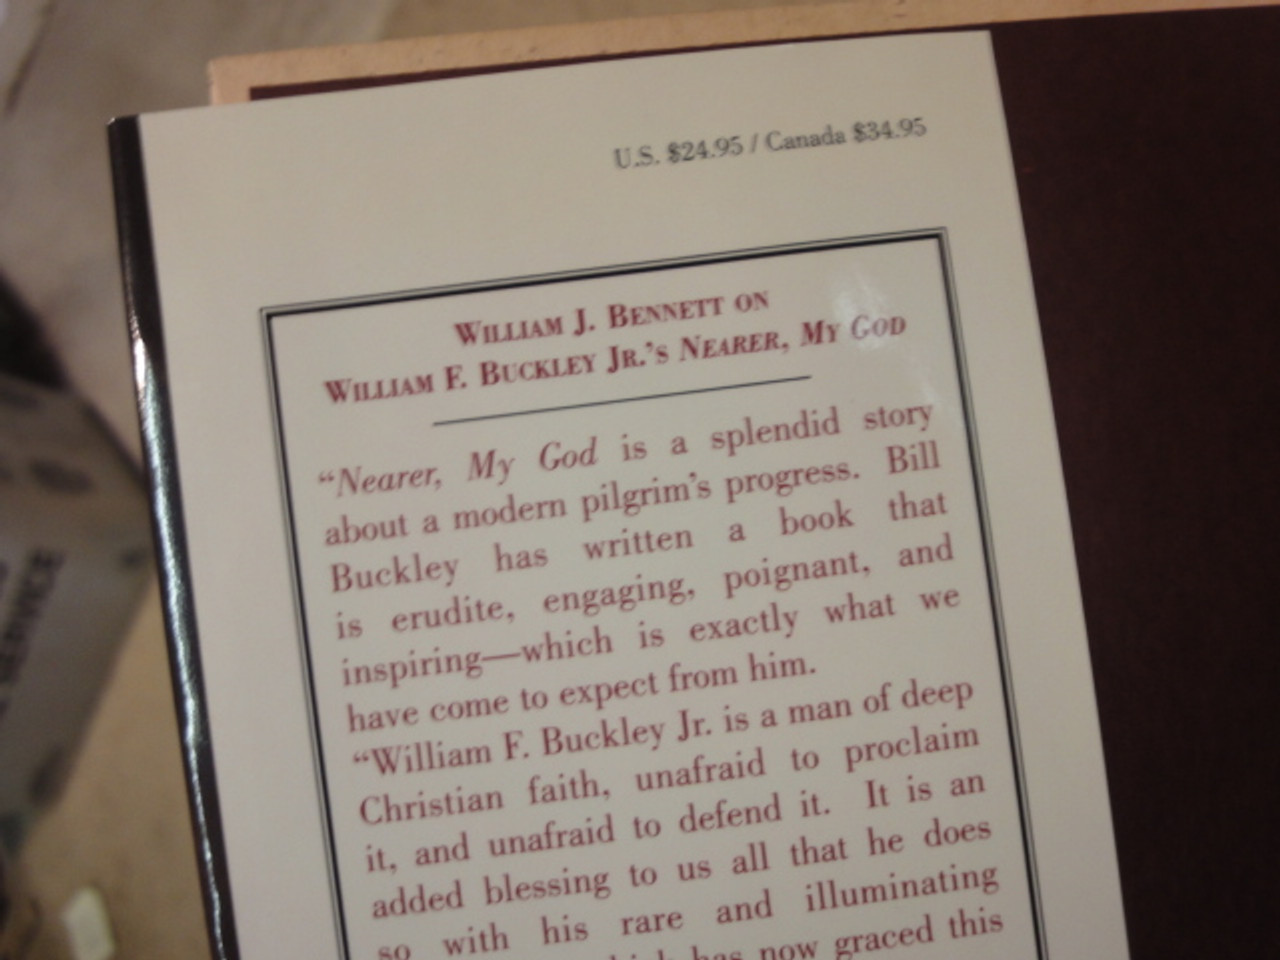 """Buckley Jr William F. """"Nearer My God"""" """"An Autobiography Of Faith"""" 1997 Book Signed Autograph Illustrated"""